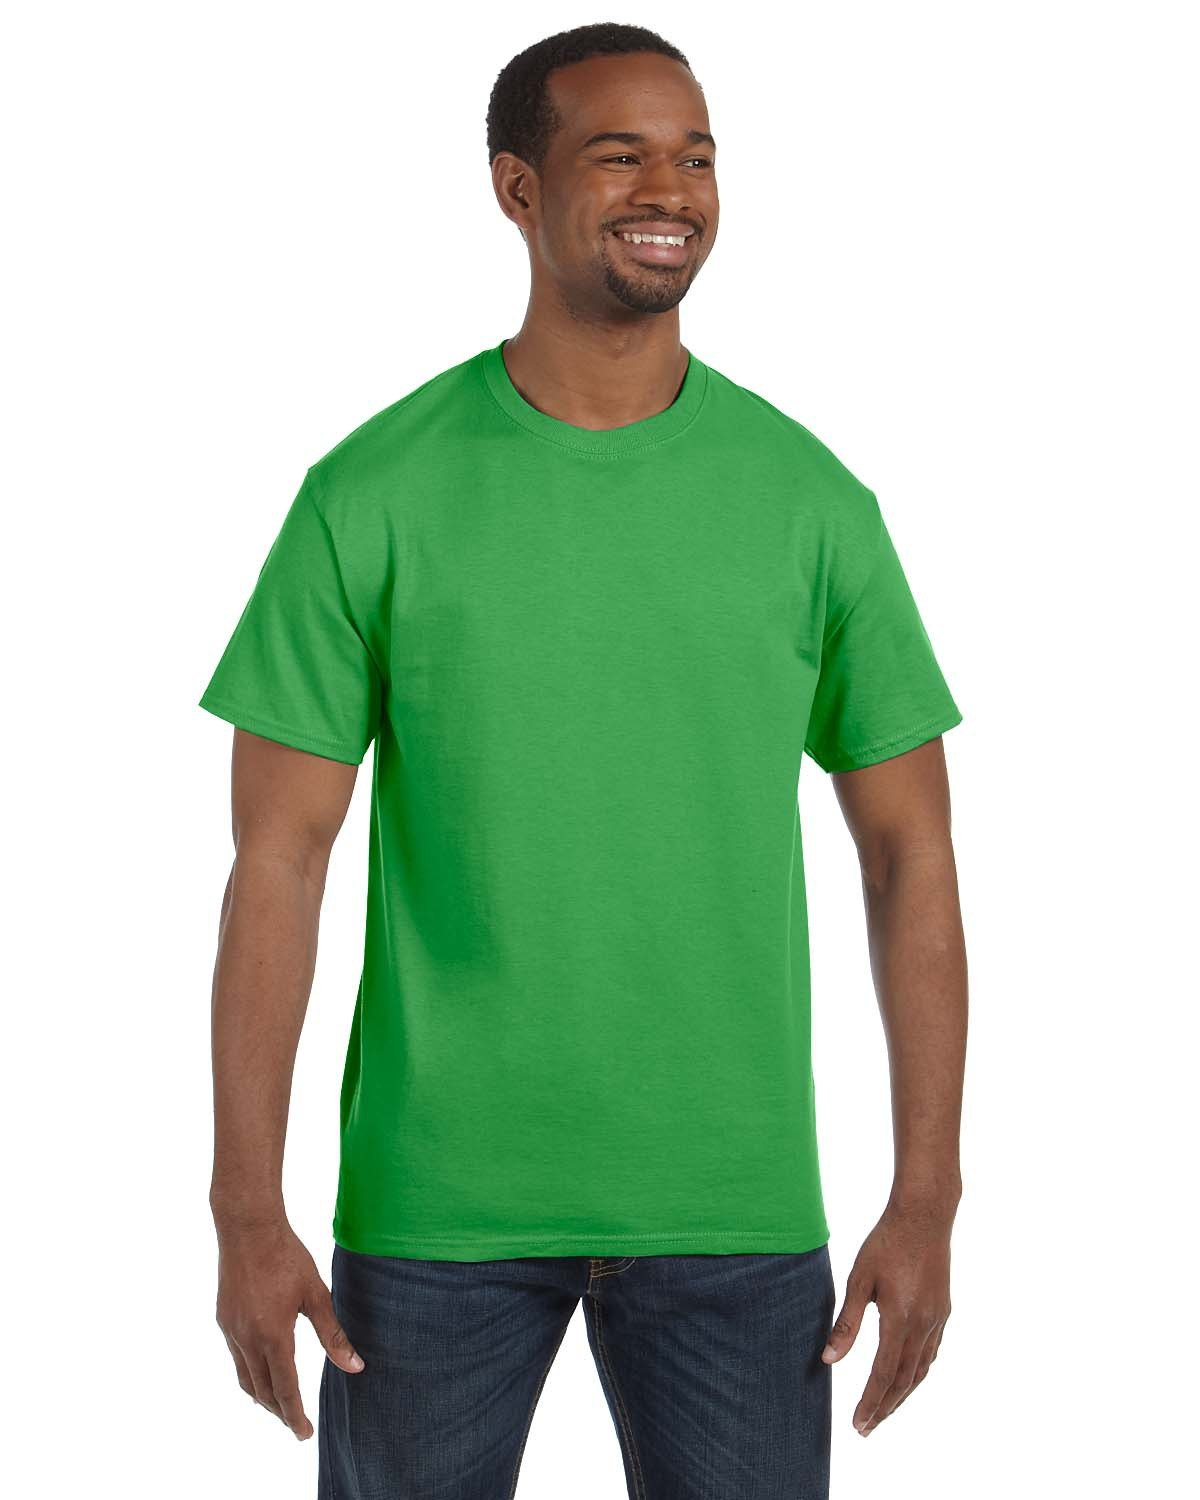 Hanes Men's Authentic-T T-Shirt SHAMROCK GREEN